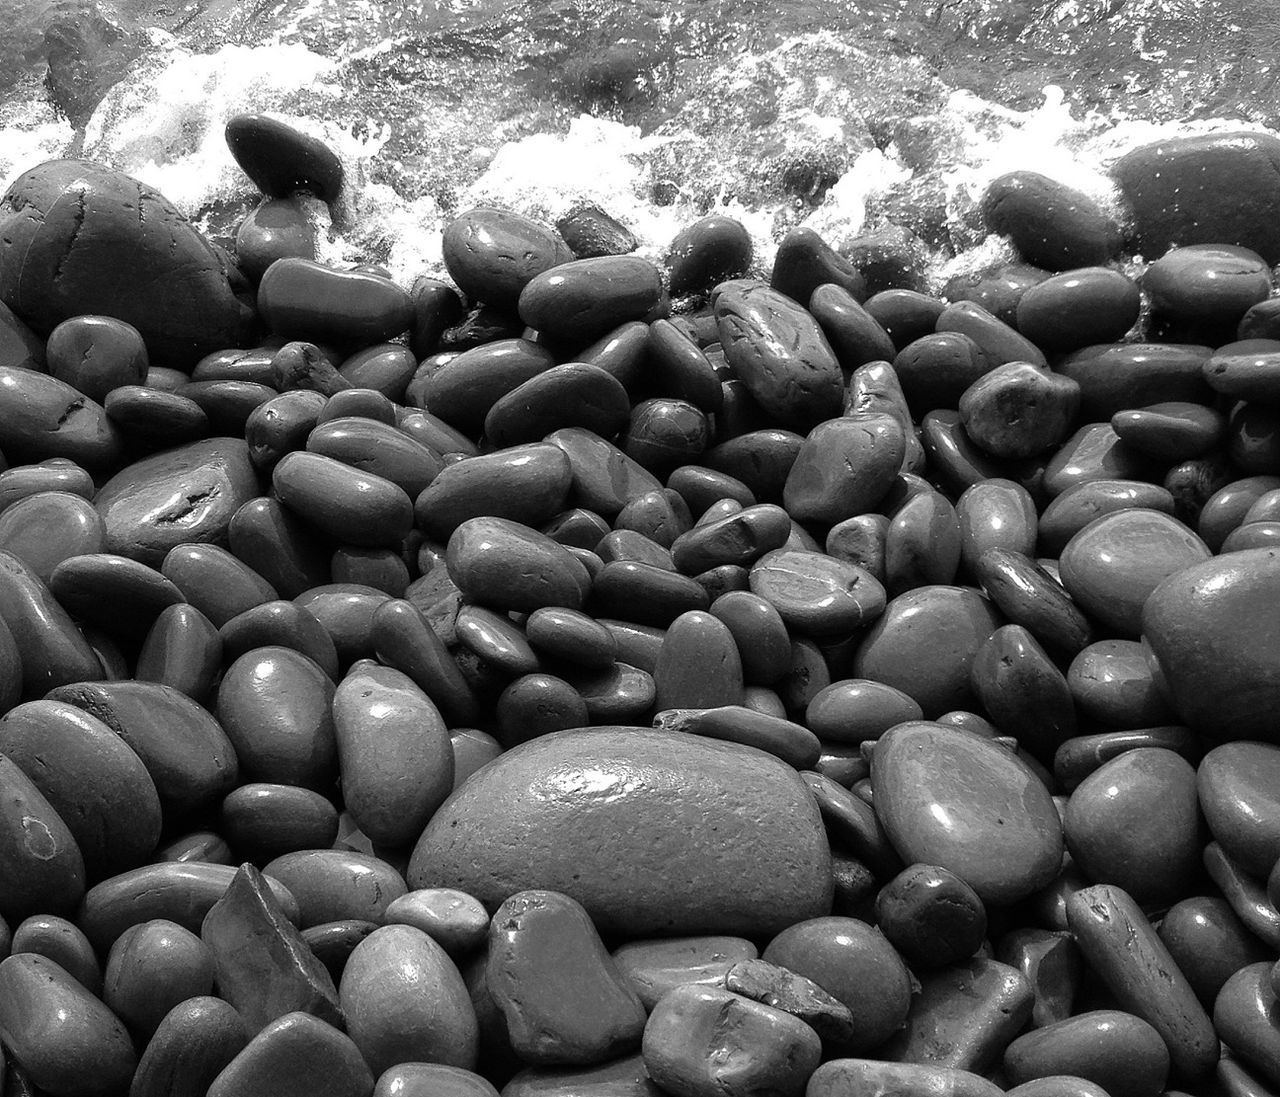 water, full frame, abundance, no people, pebble, backgrounds, nature, outdoors, day, beauty in nature, pebble beach, close-up